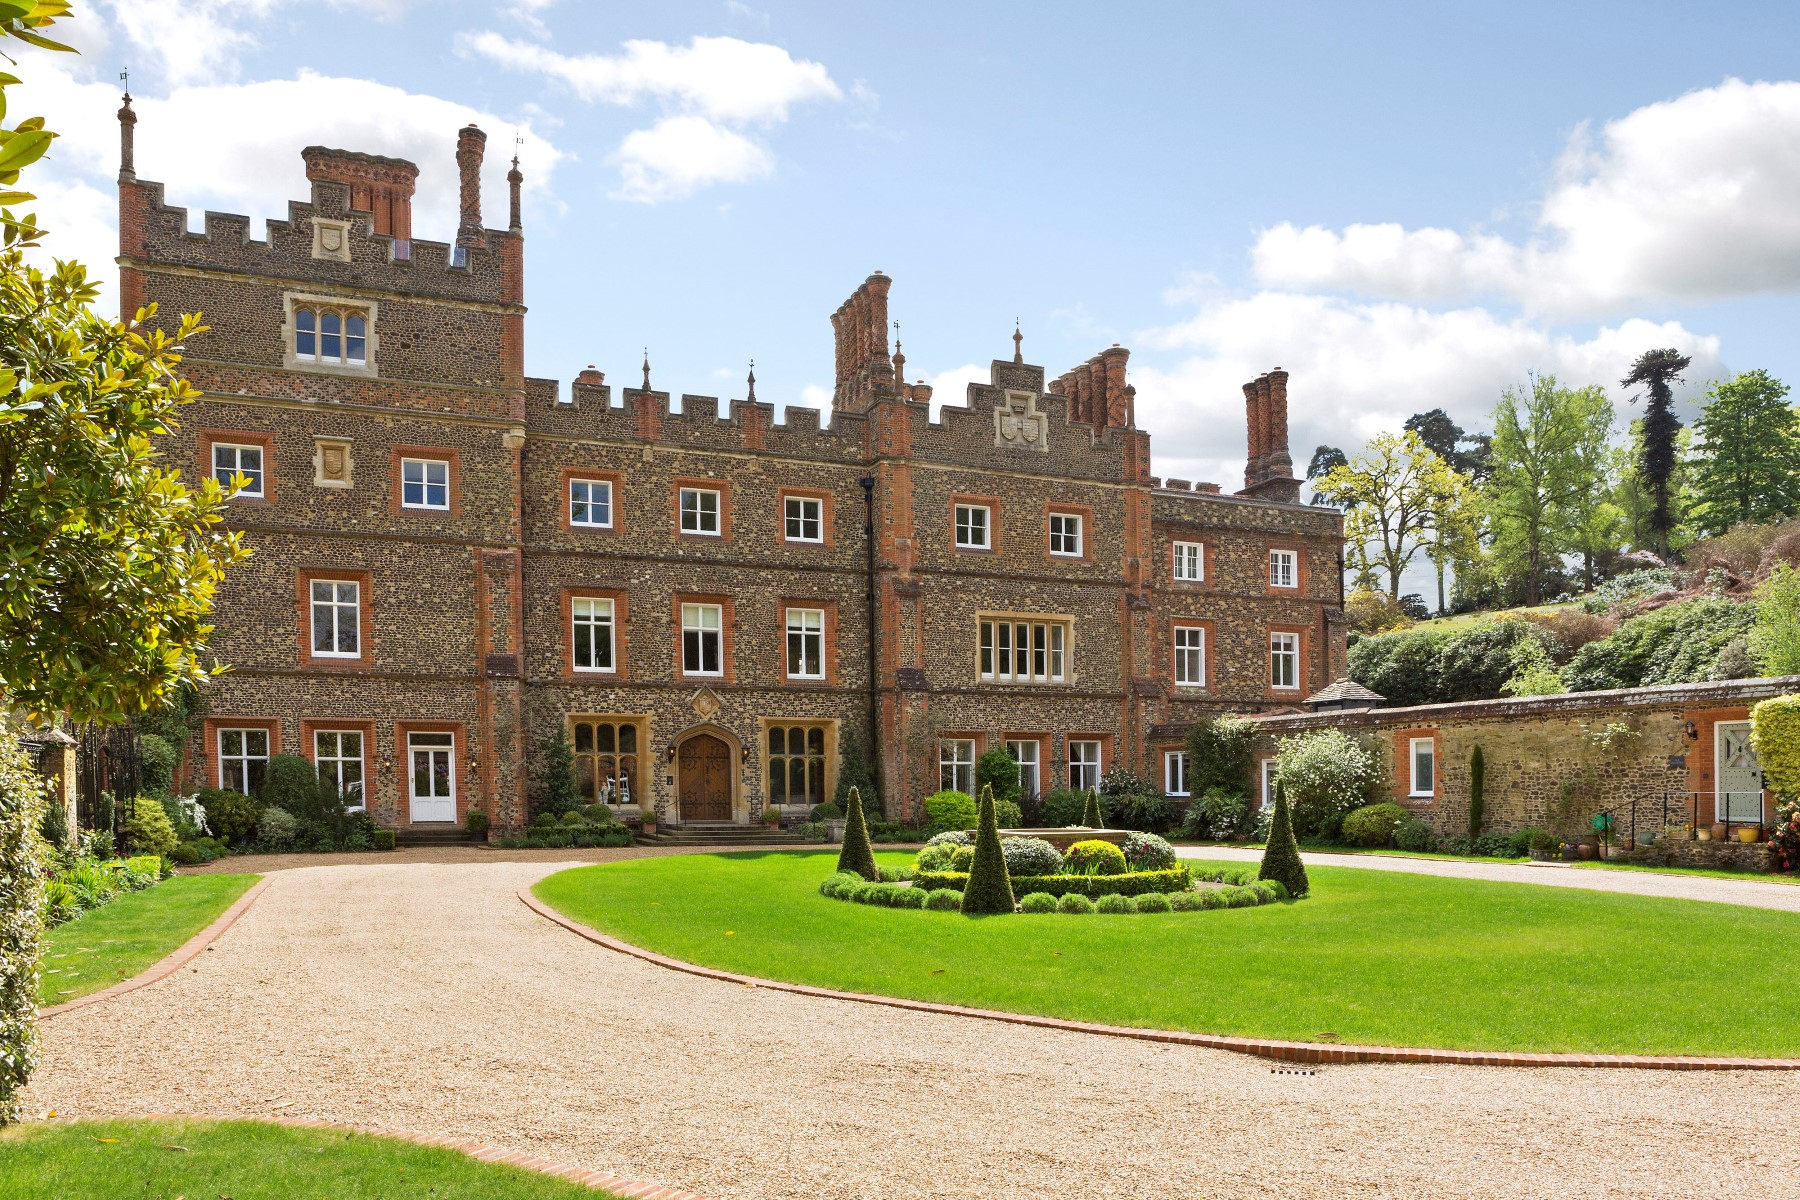 Single Family Homes for Sale at The Buttery 2 Albury Park Mansion Albury, England GU5 9BB United Kingdom